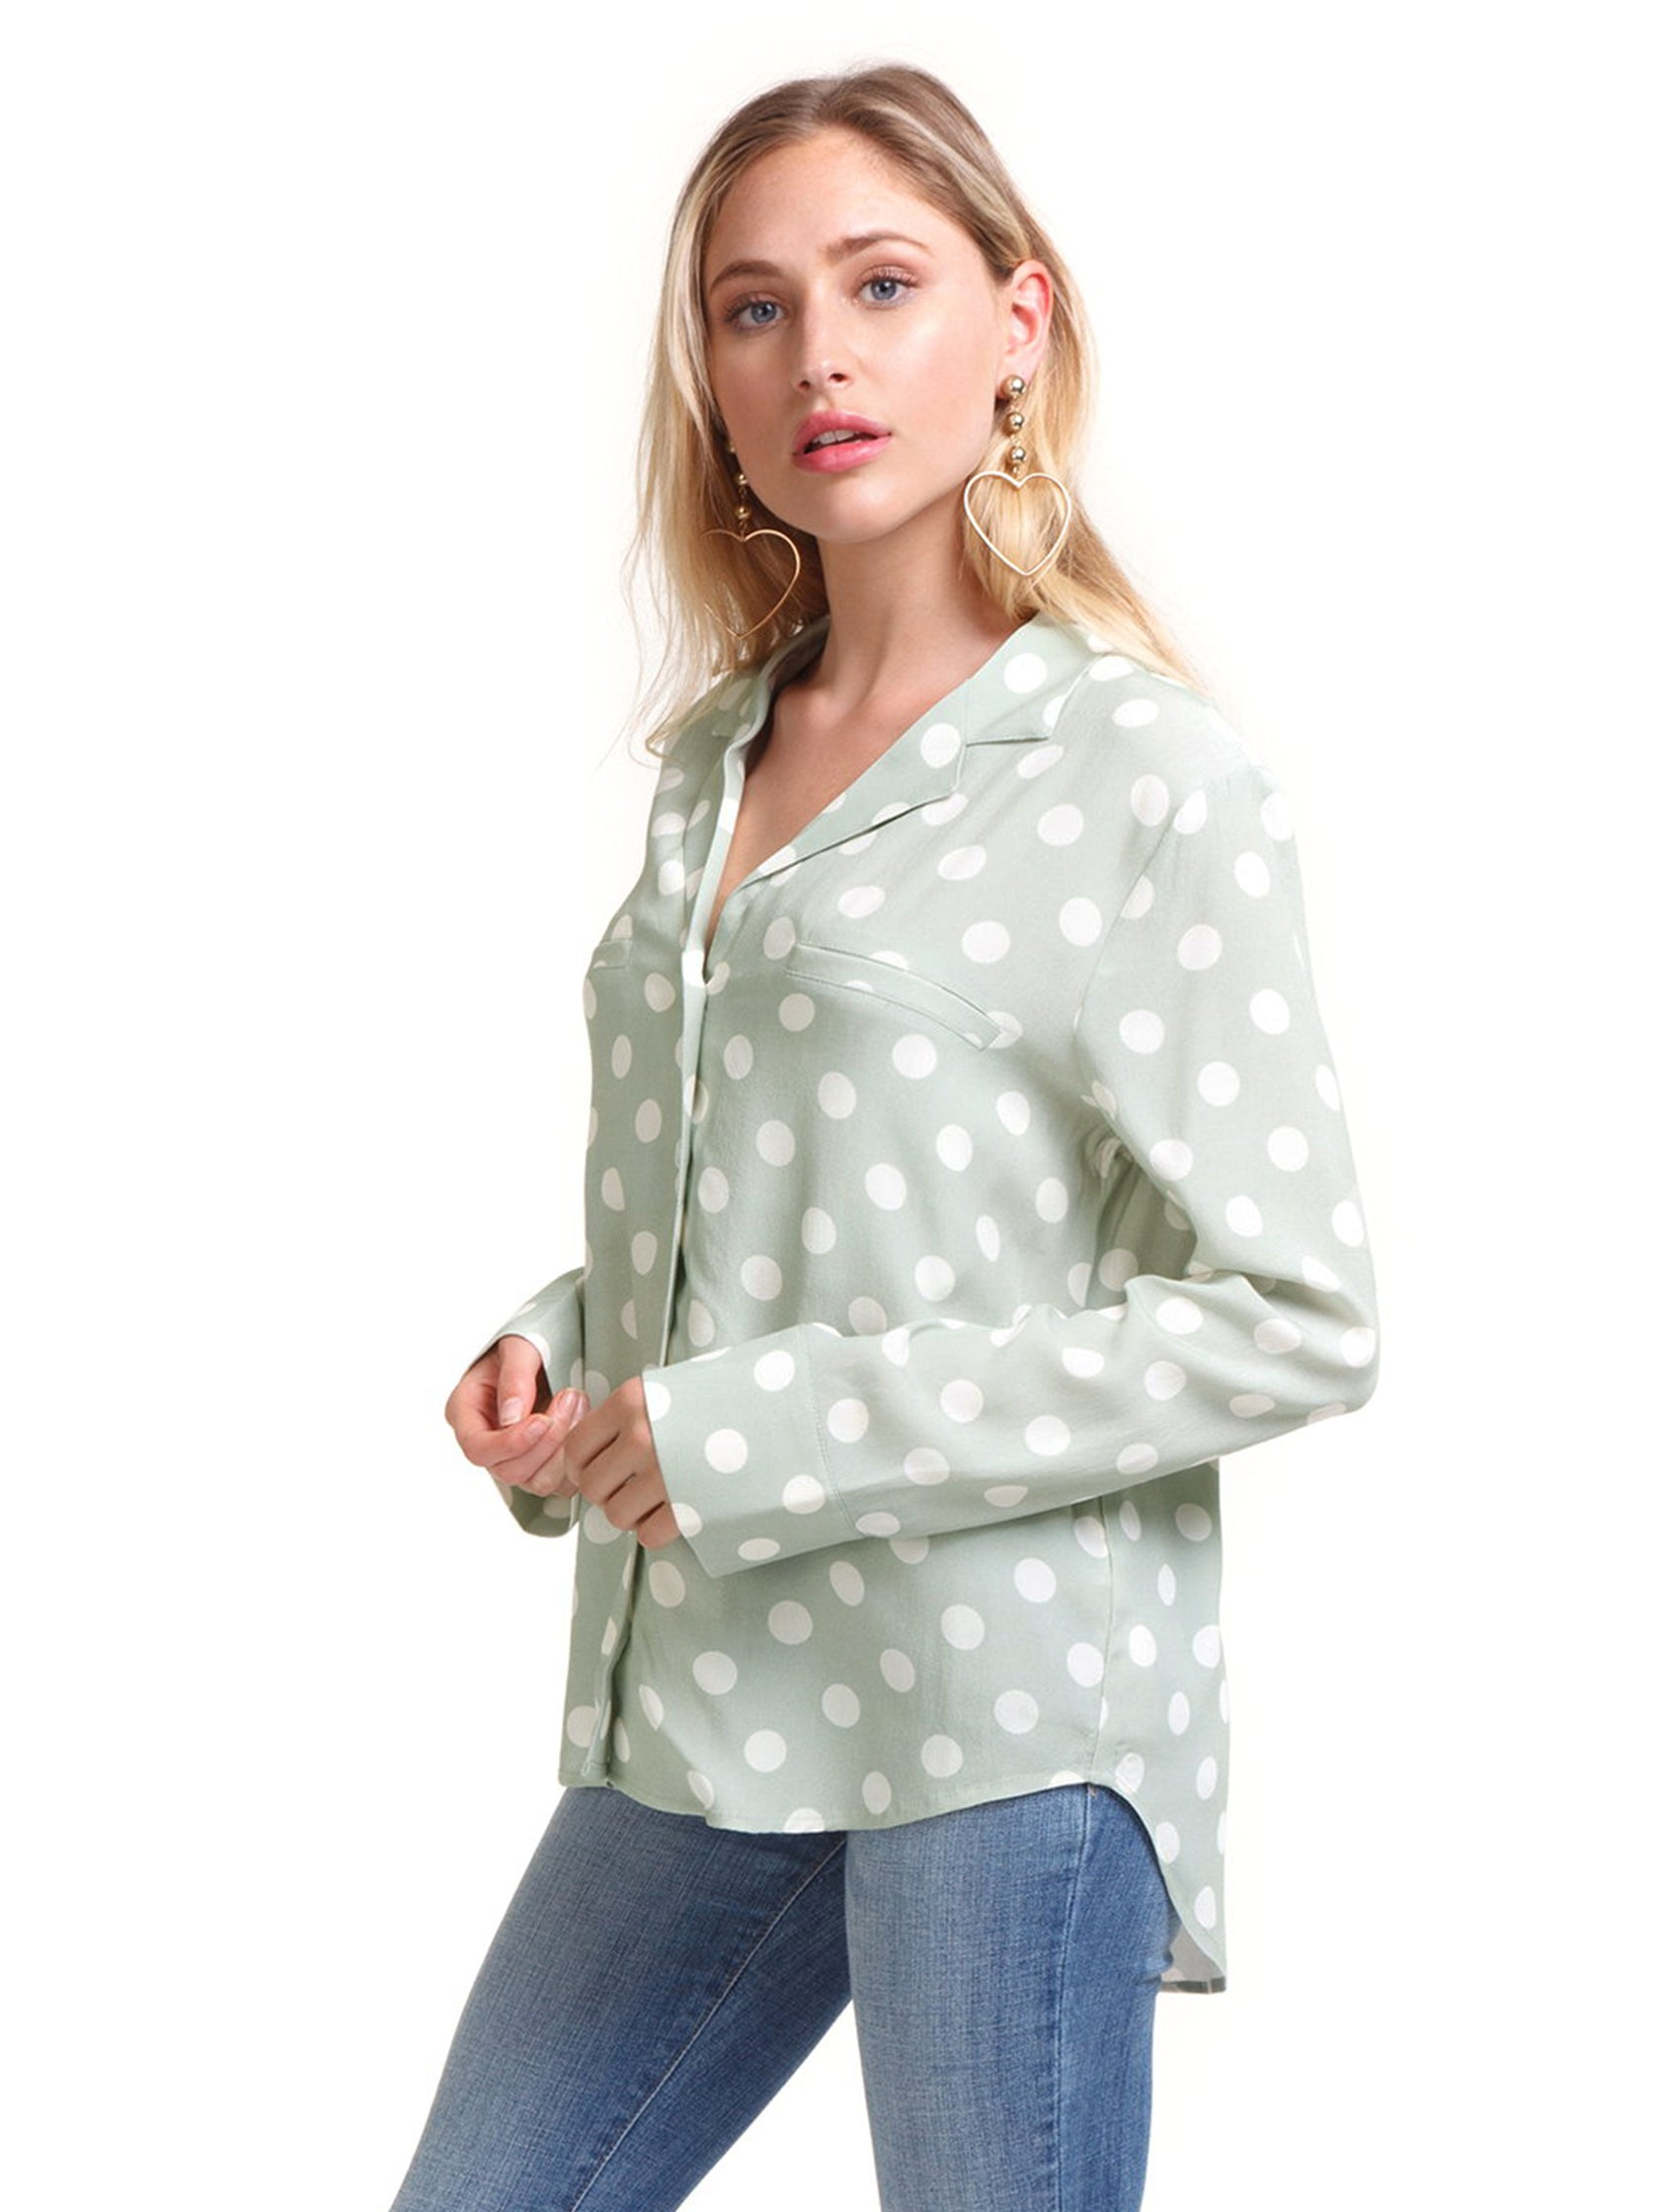 Girl wearing a top rental from Capulet called Geneva Polka Dot Buttondown